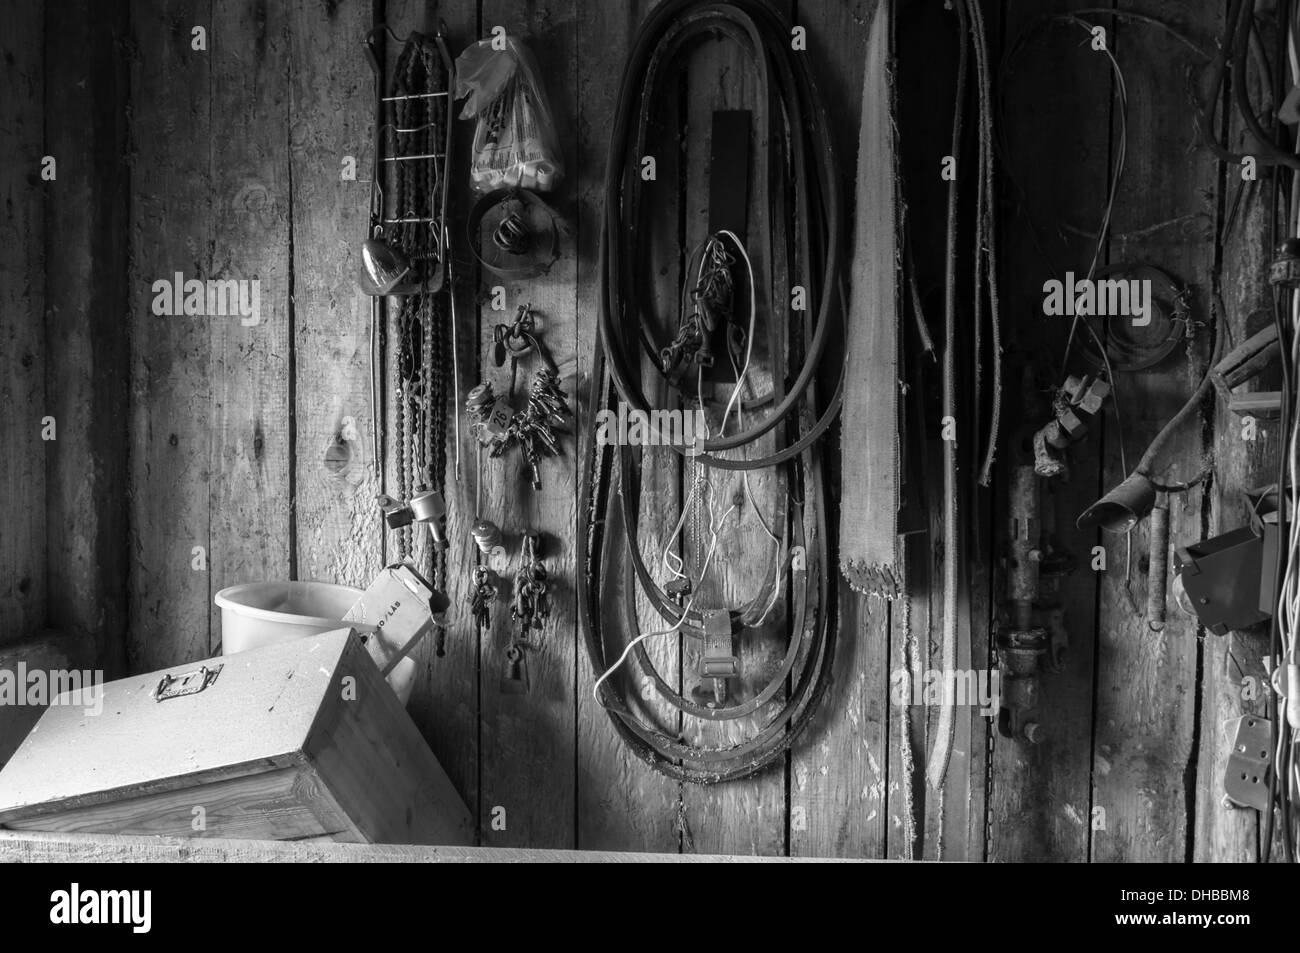 Tools and belts on an abandoned workshop wall - Stock Image